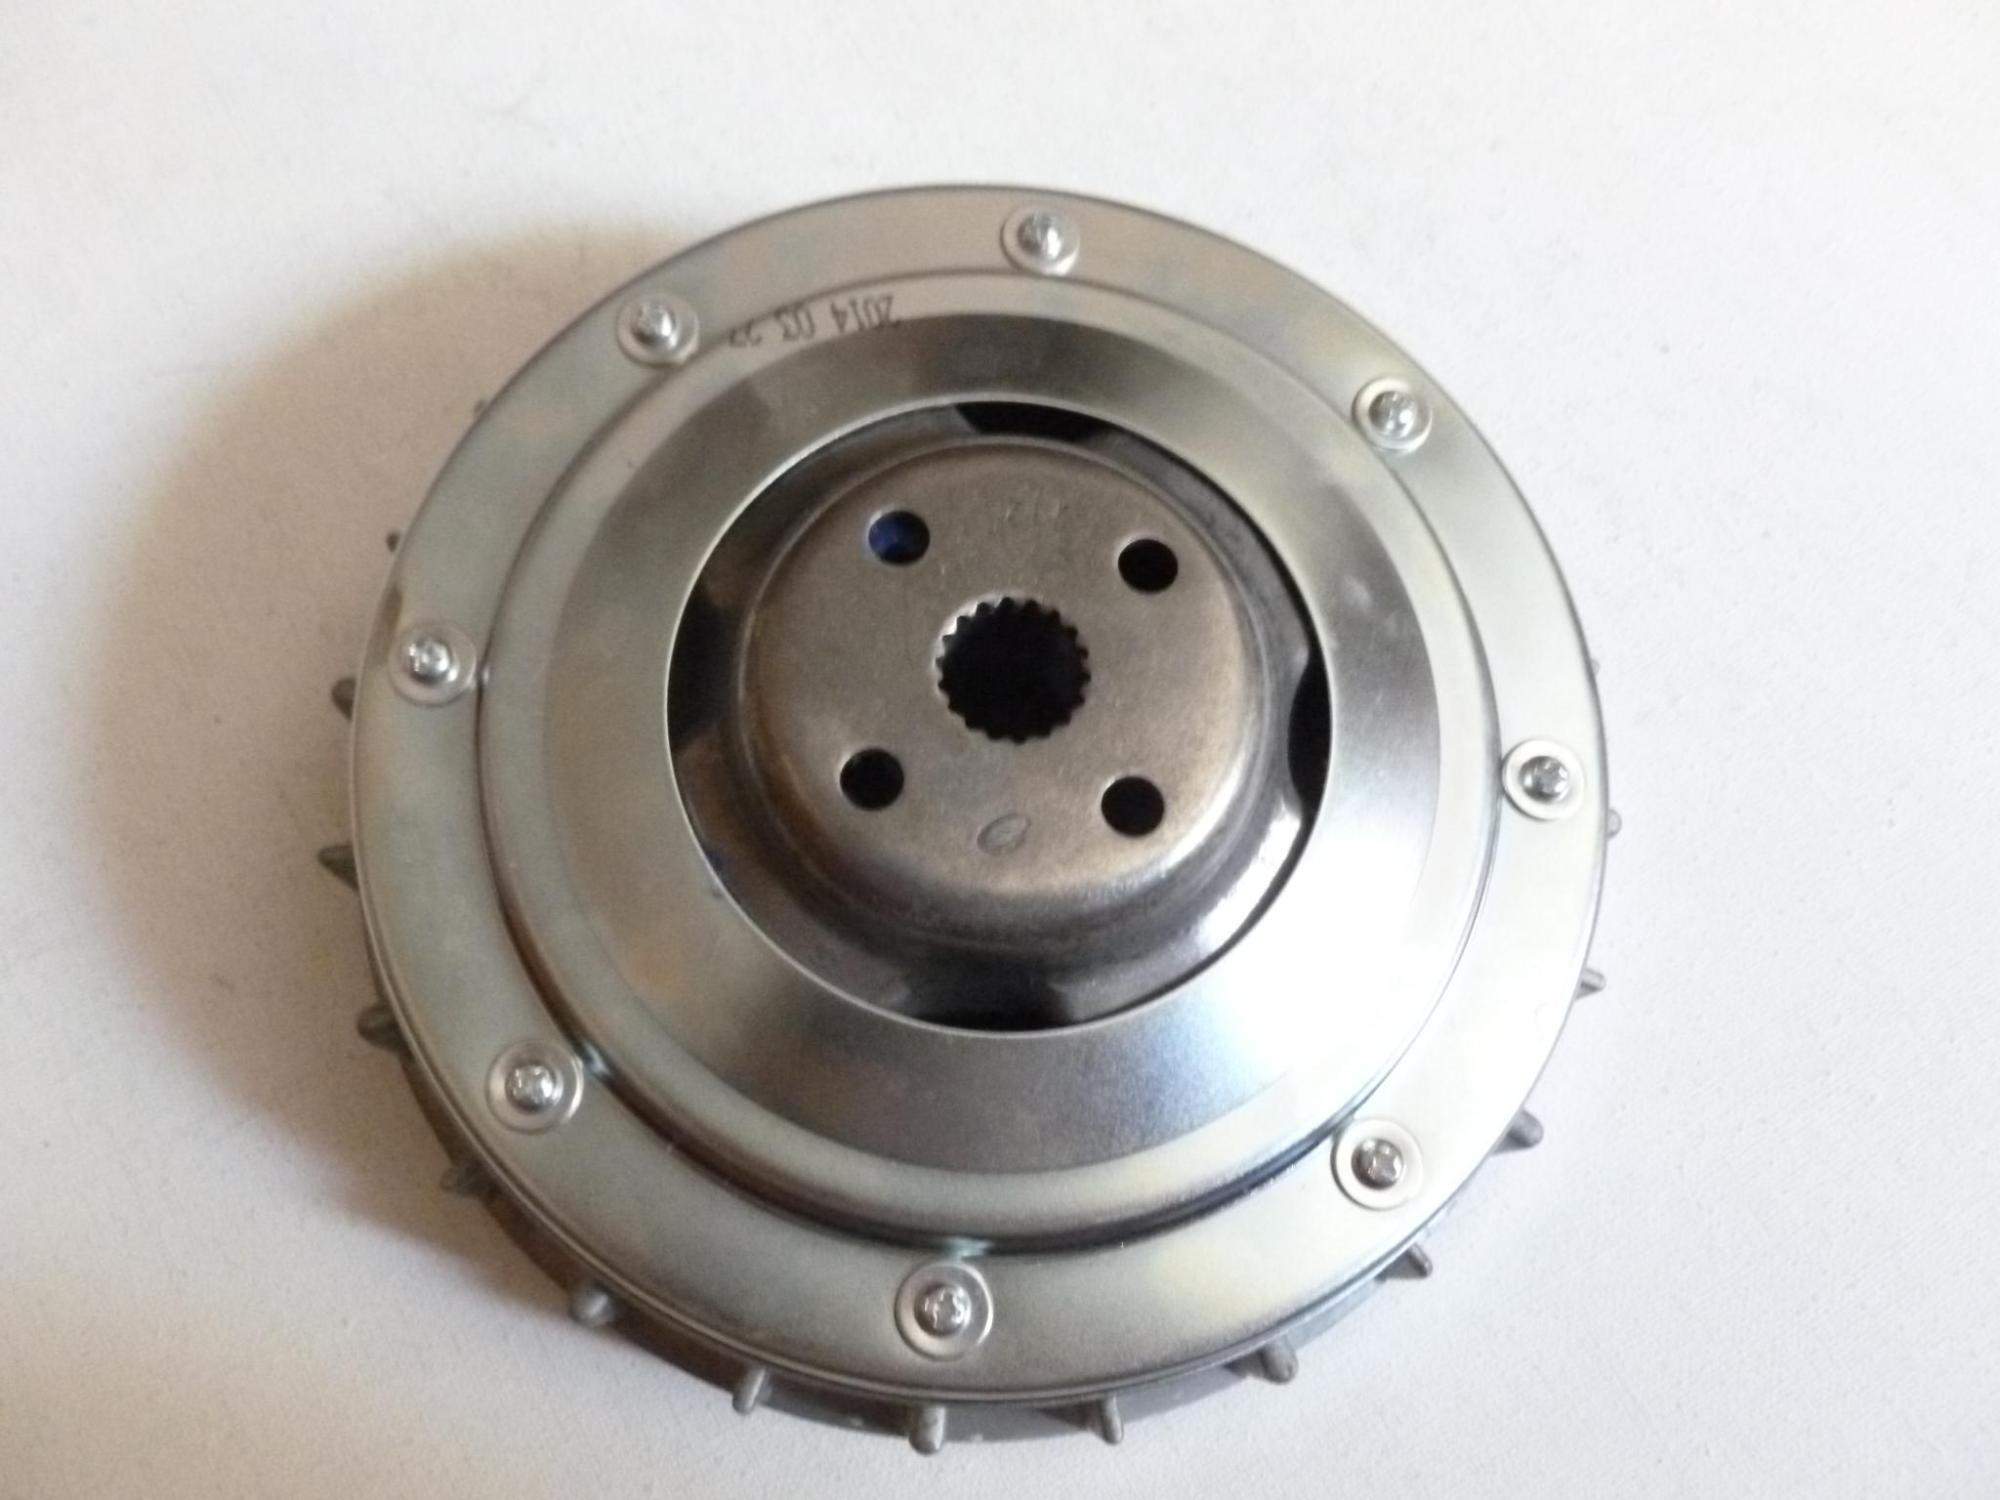 hight resolution of new grizzly 550 4x4 primary clutch sheave assembly fits yamaha 2009 2012 grizzly 550 primary sheave online with 167 67 set on annkparts s store dhgate